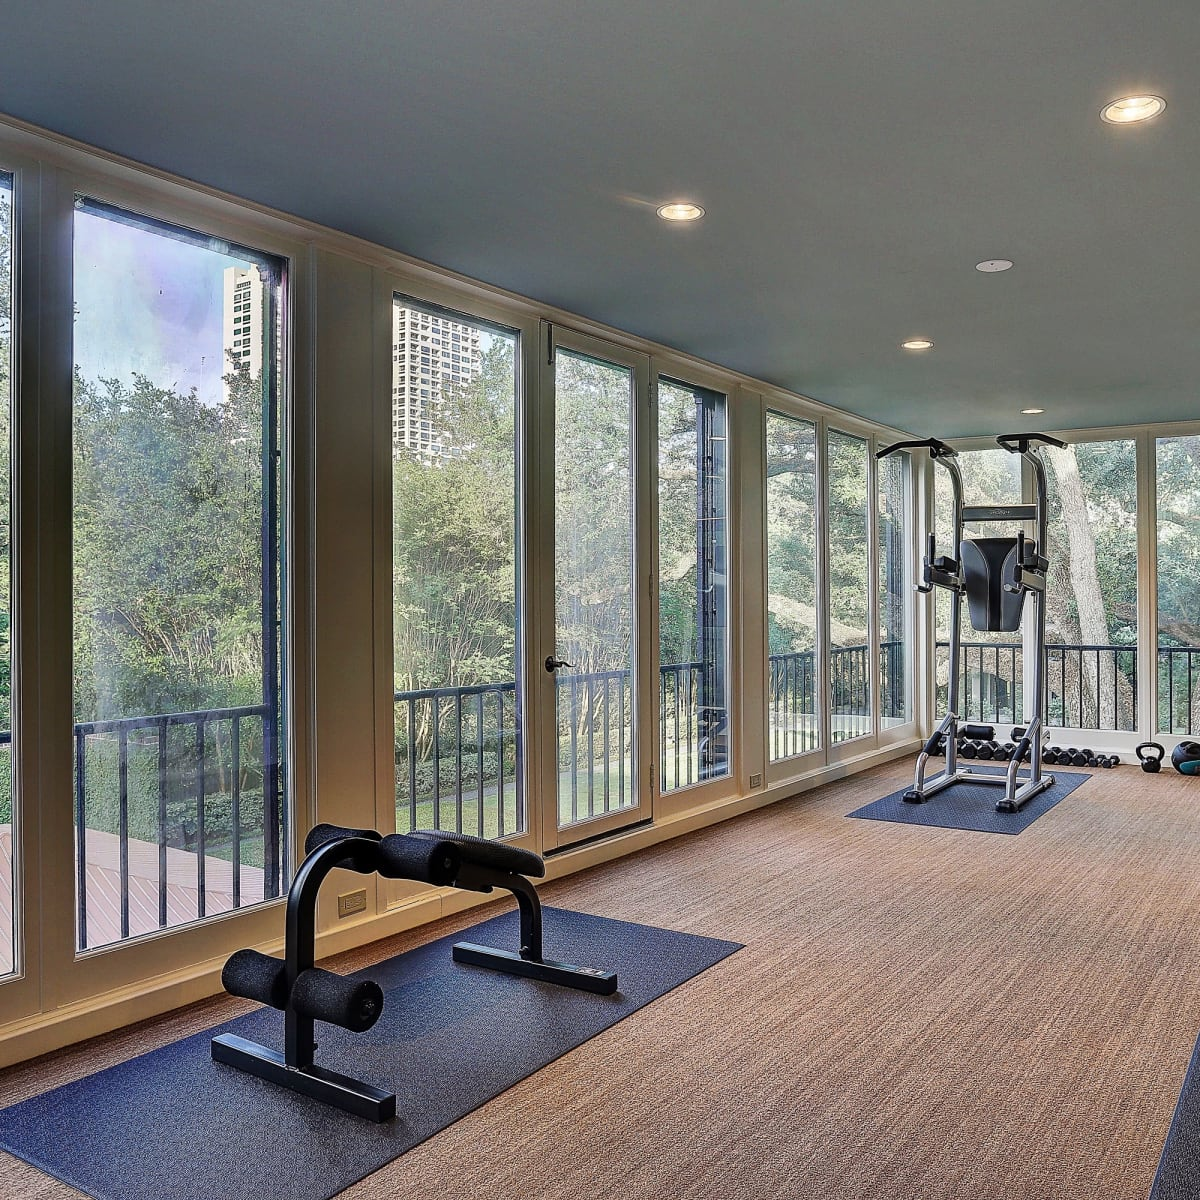 2 Longfellow Lane exercise room